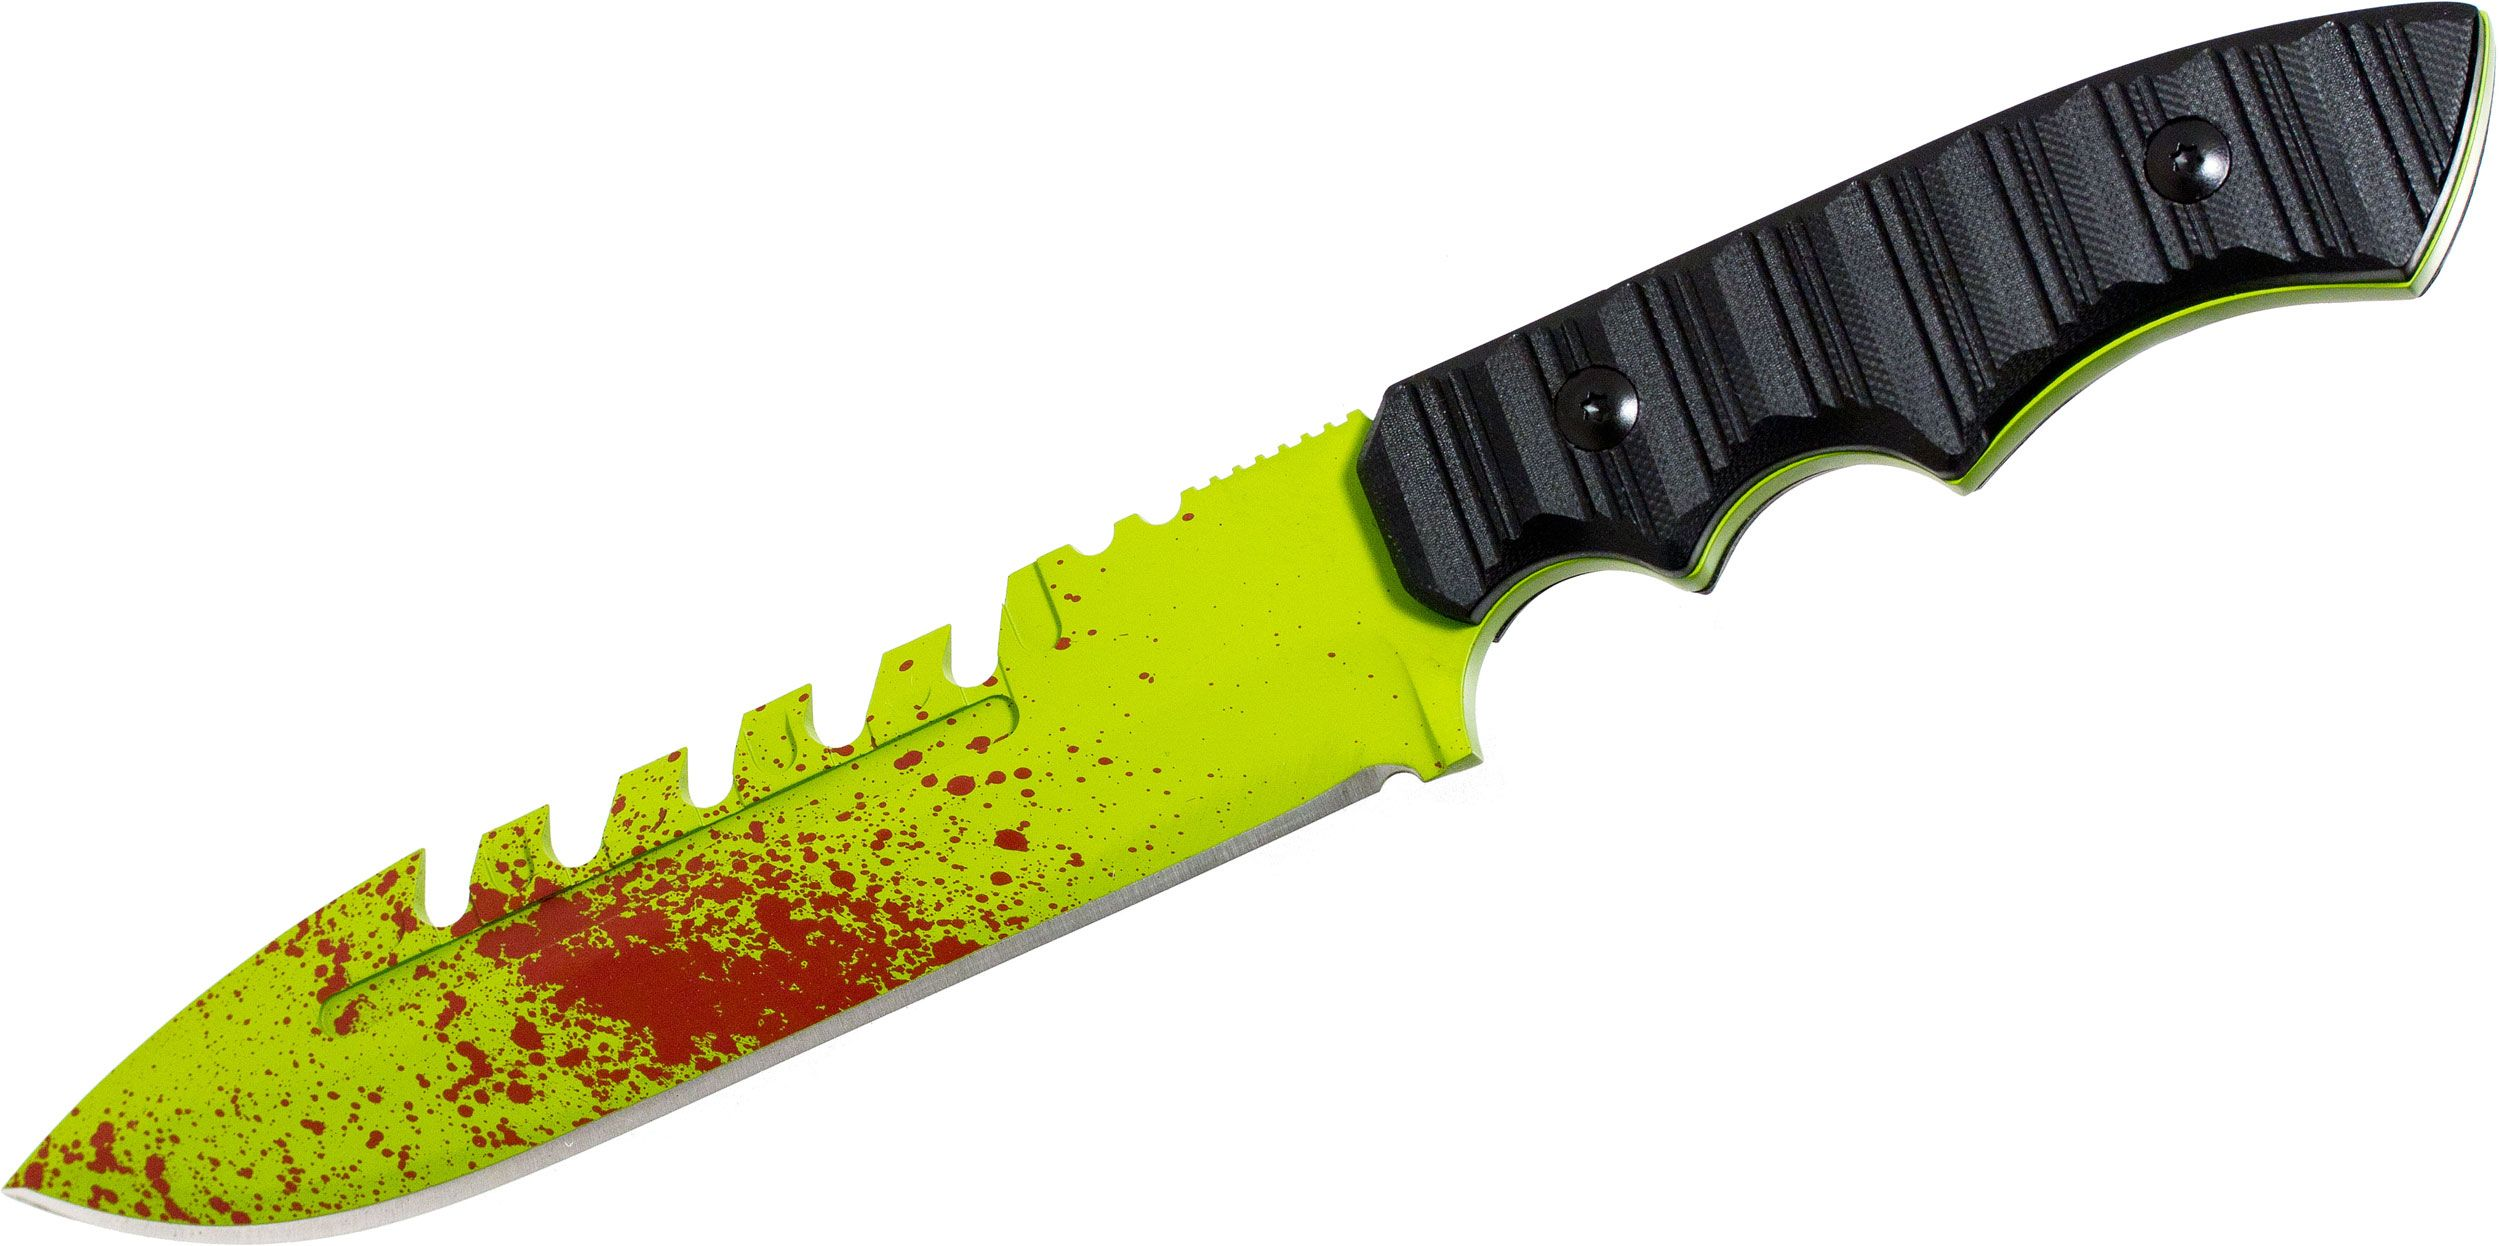 Brous Blades Limited Edition Zombie Green Coroner Fixed 6.25 inch D2 Blade, G10 Handles, Kydex Sheath